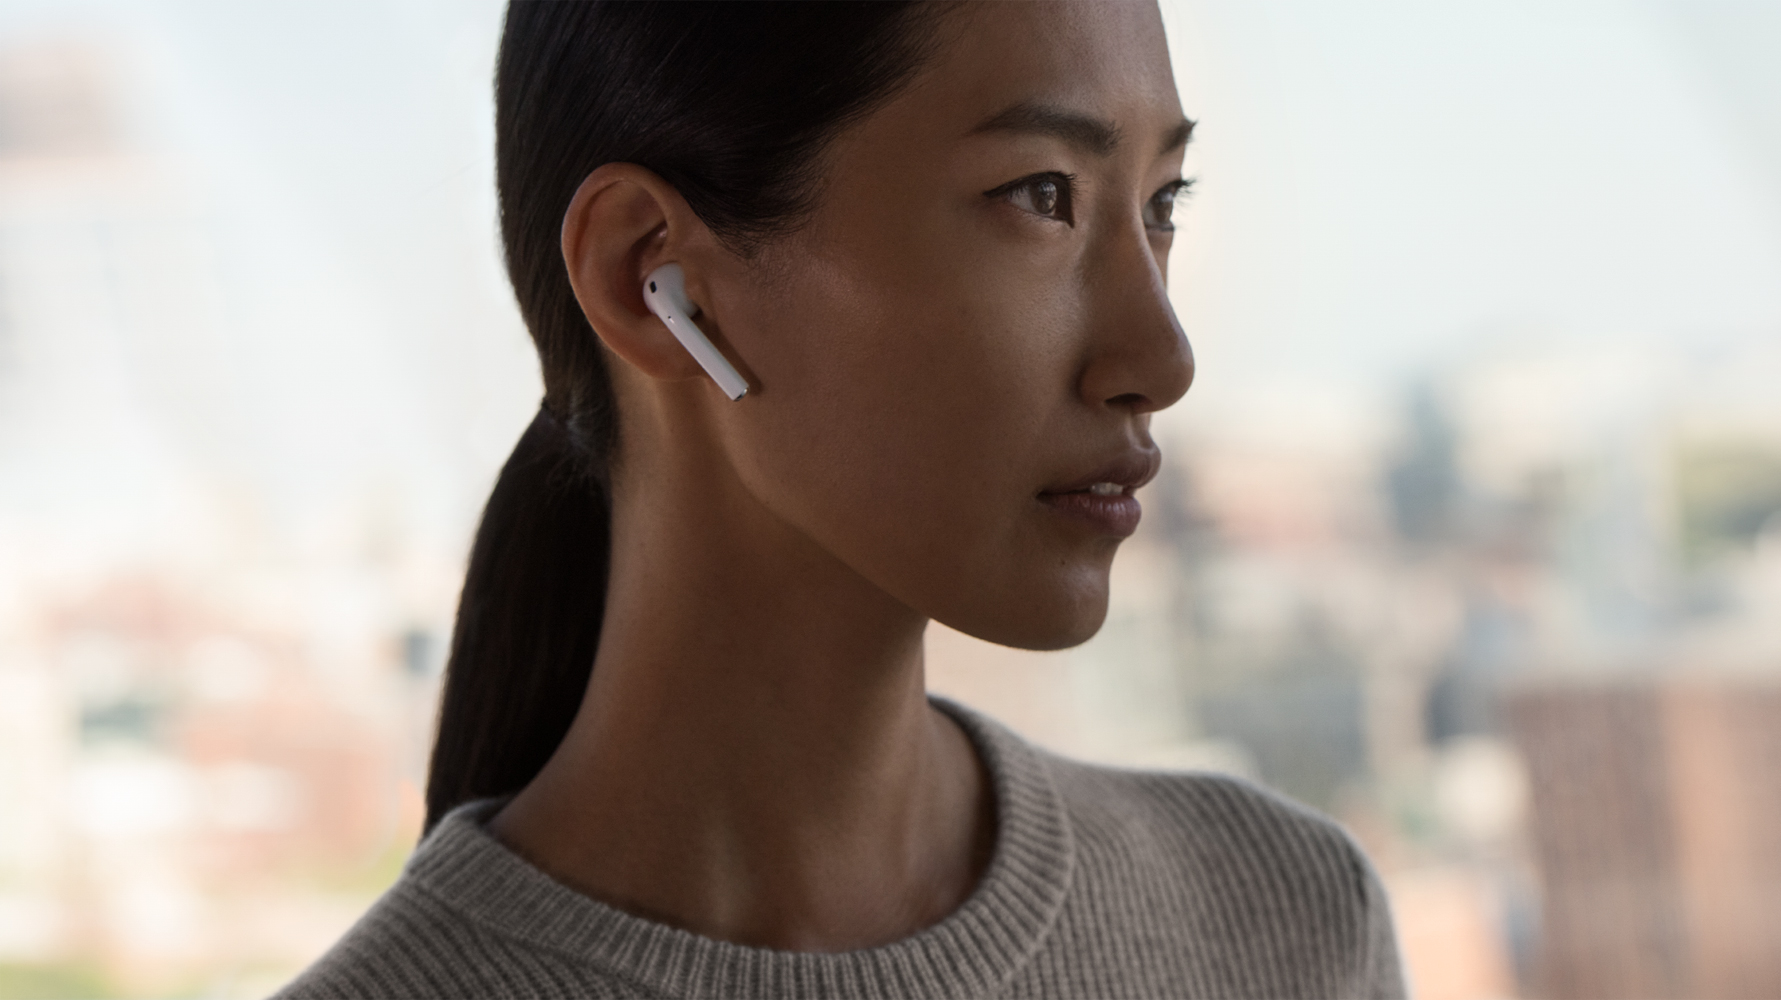 From zero to hero: Apple AirPods and the tech that took time to catch on